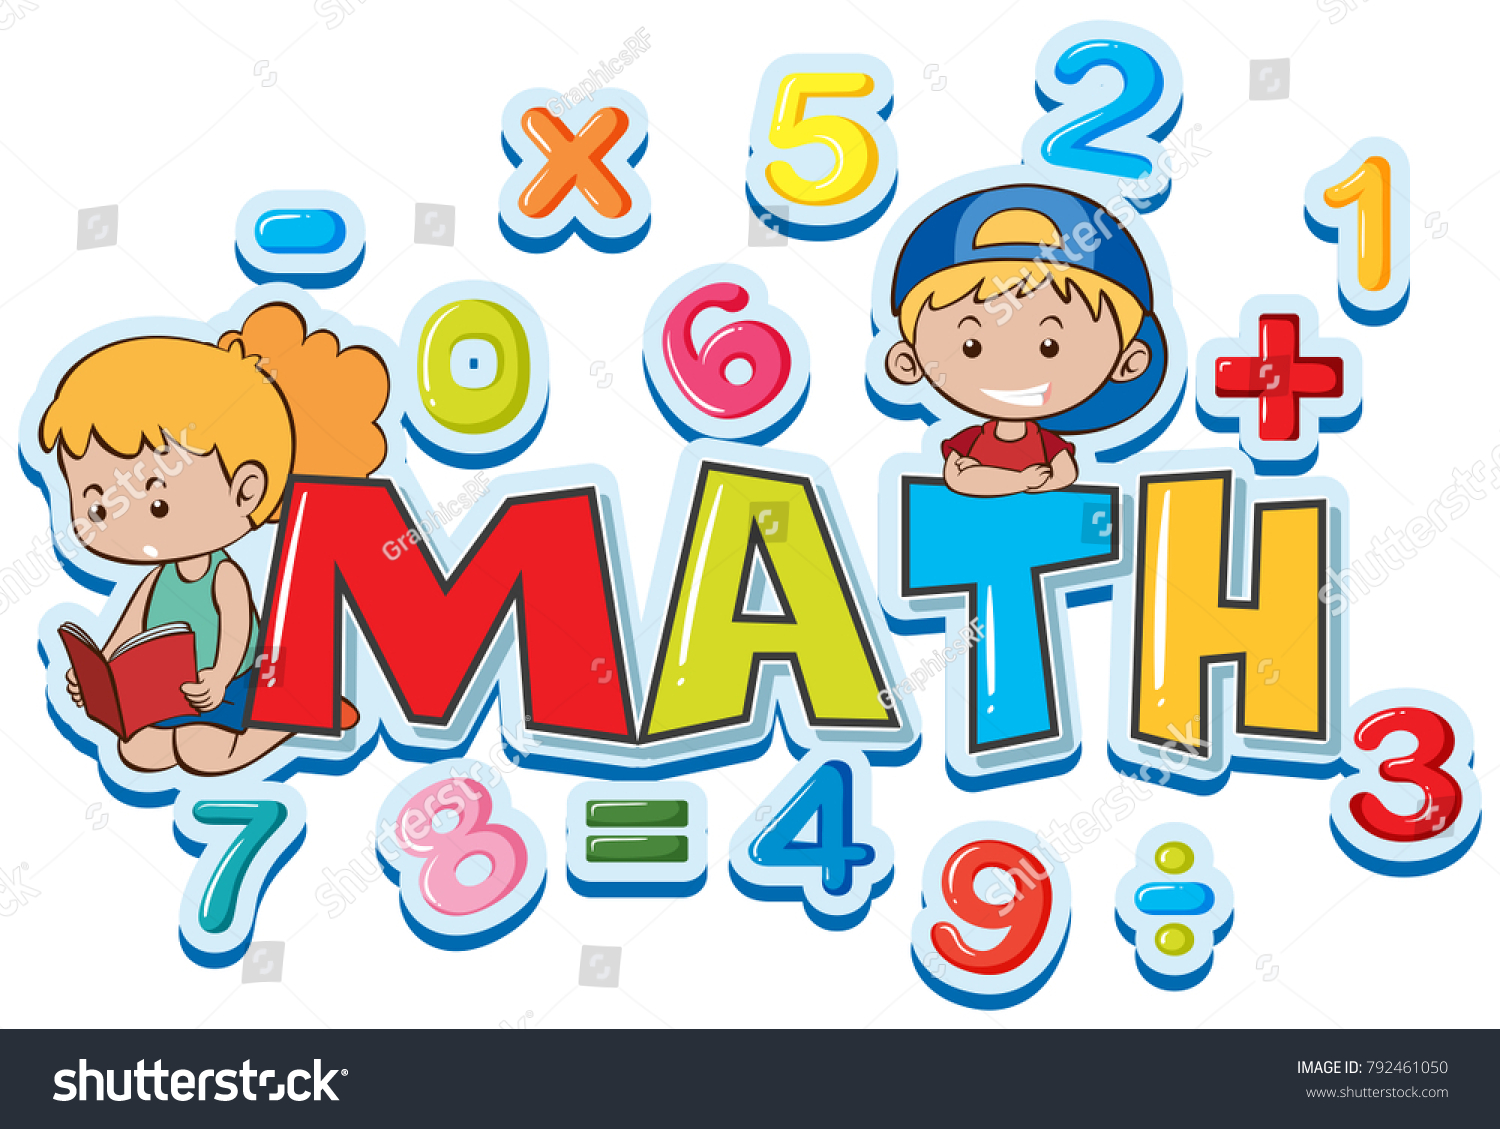 Font Design Word Math Many Numbers Stock Photo (Photo, Vector ...